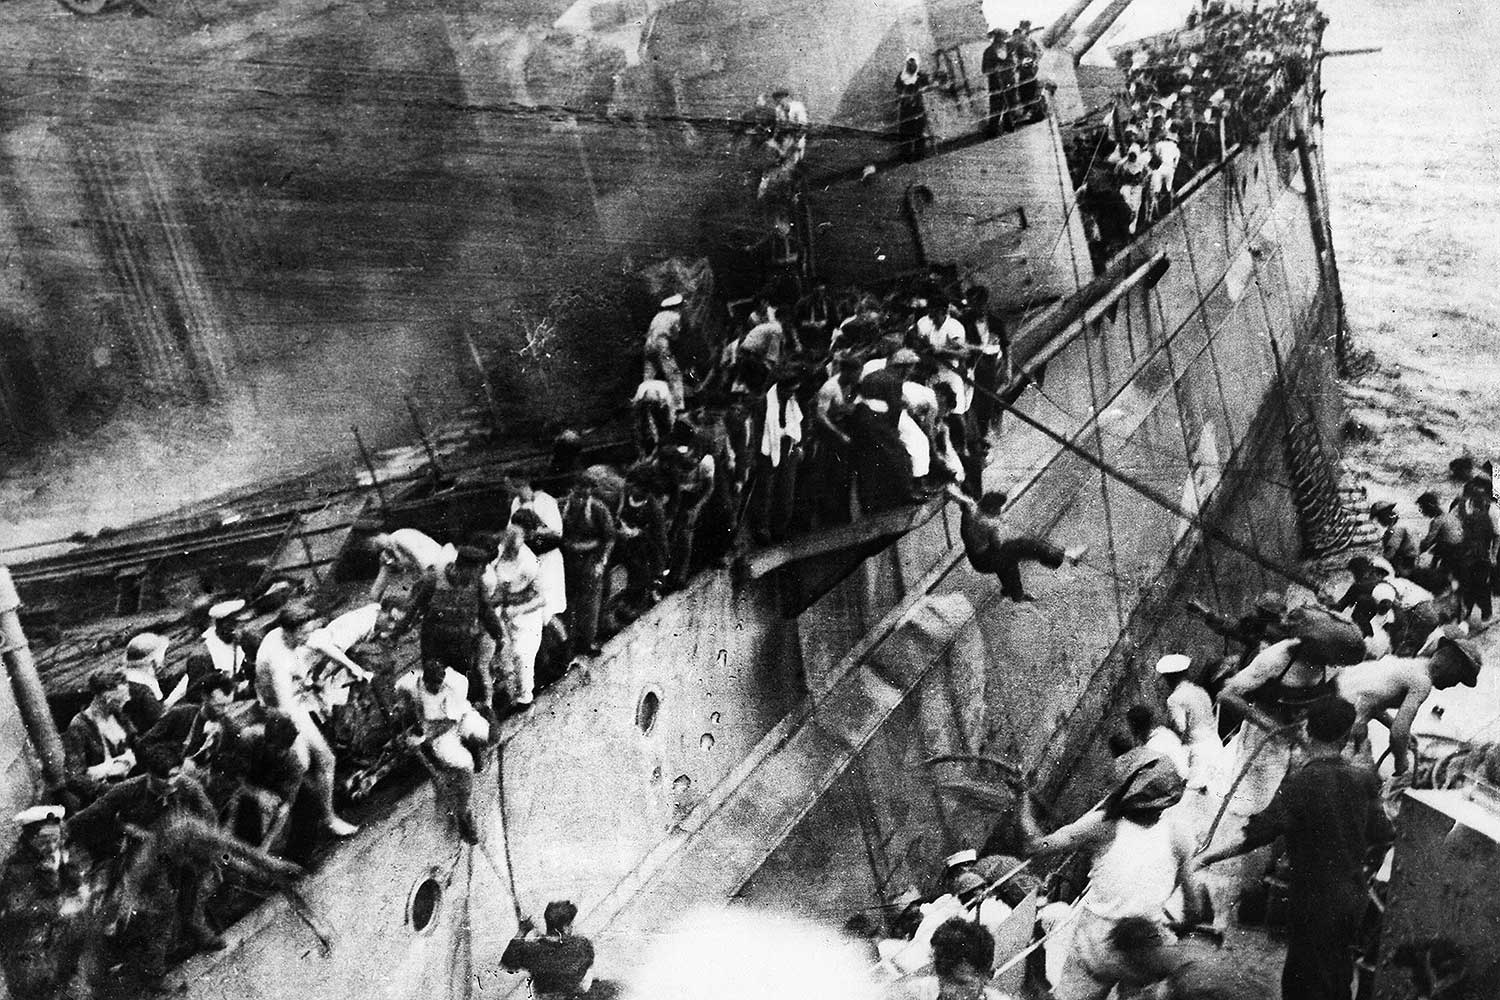 Sailors abandon HMS Prince of Wales and attempt to board the destroyer HMS Express 10 December 1941. © Ullstein Bild/Getty Images.